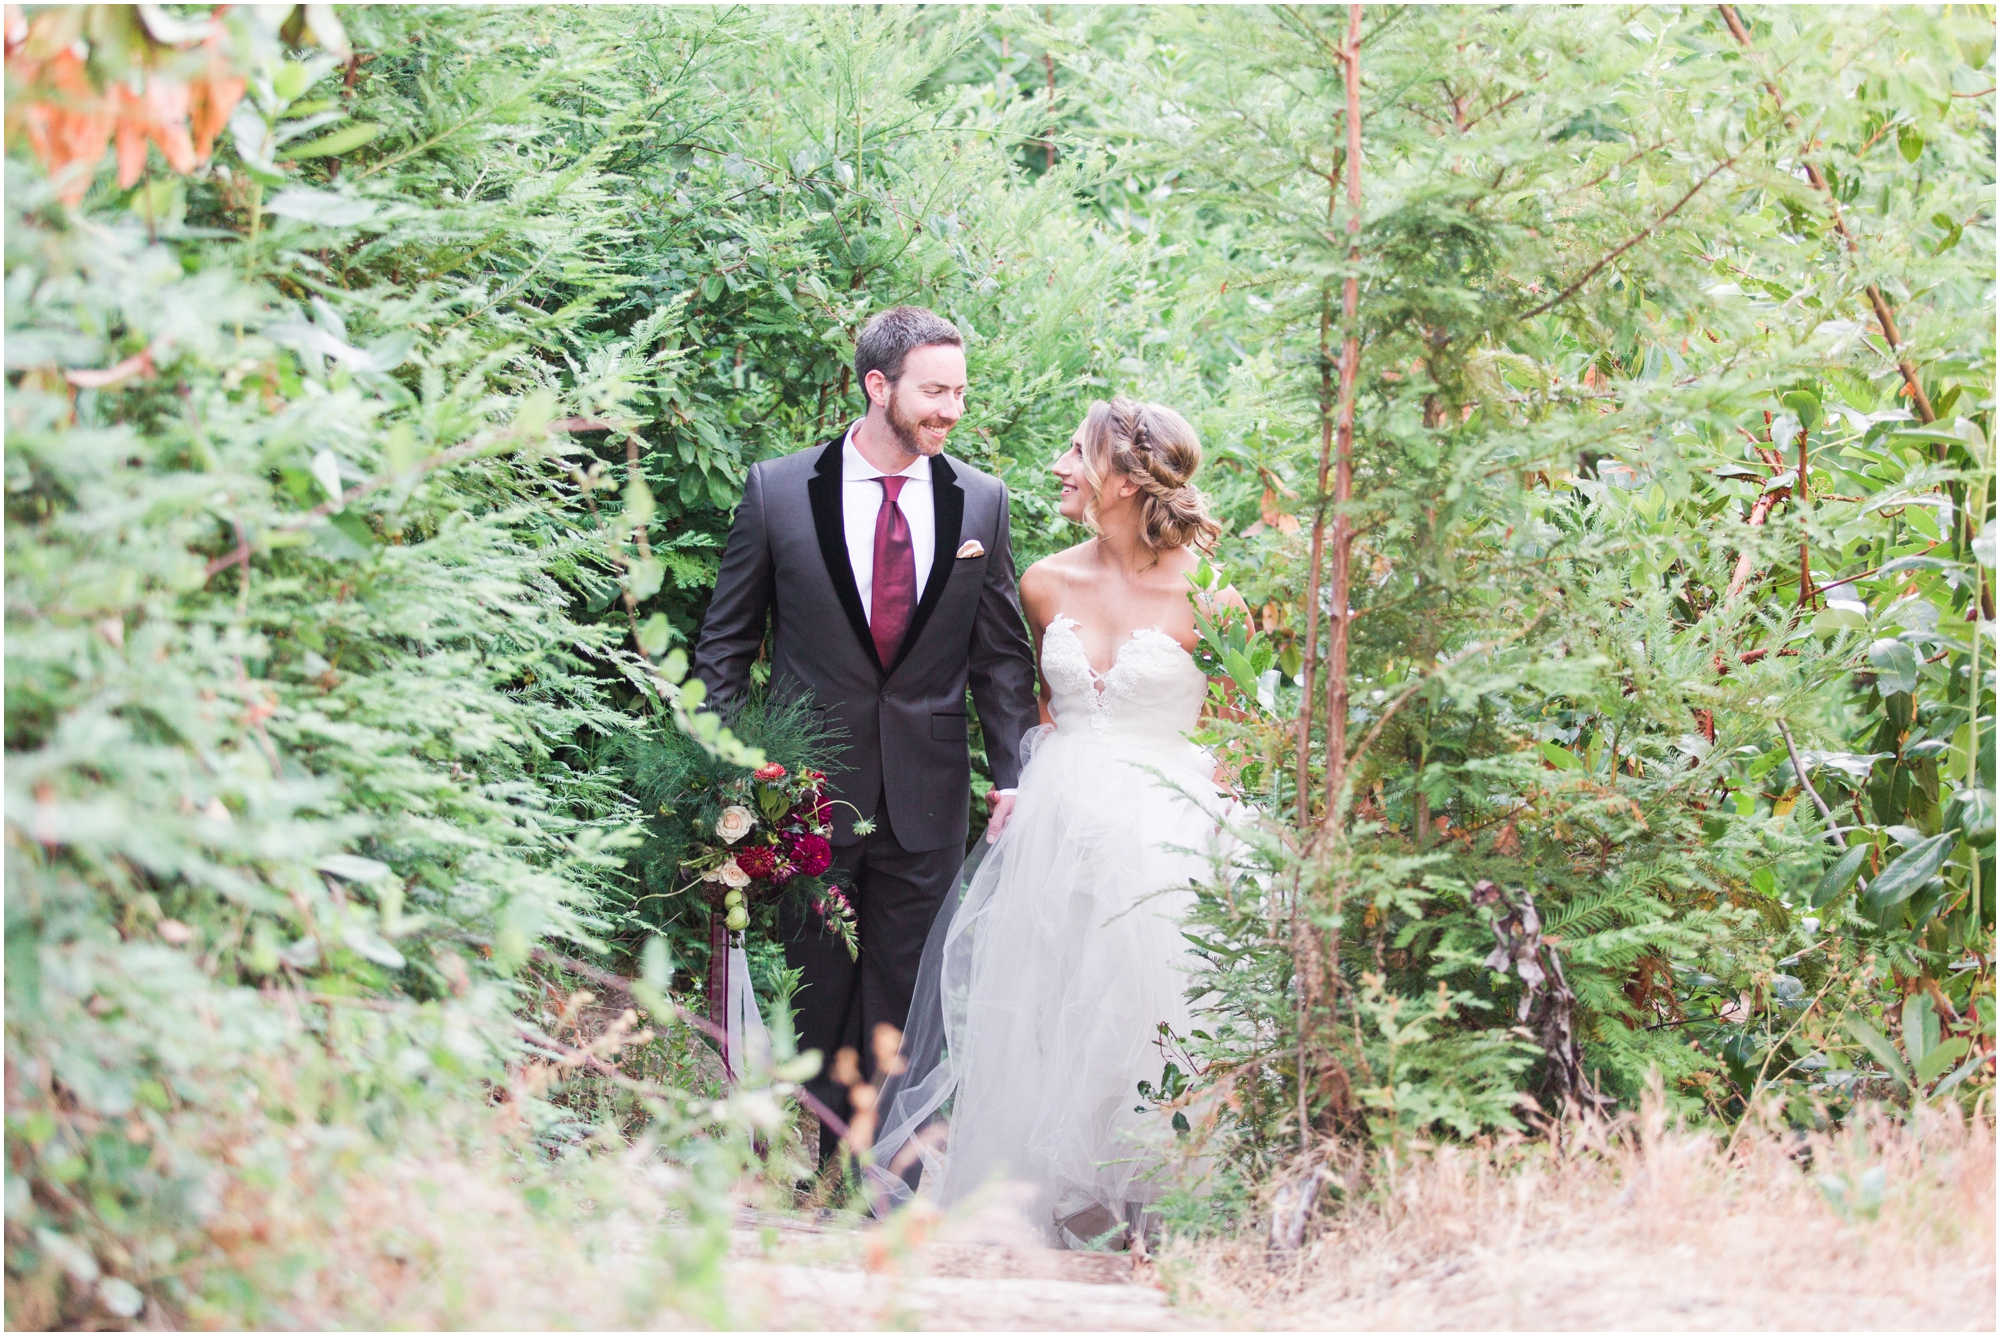 Byington Winery wedding pictures by Briana Calderon Photography_1445.jpg